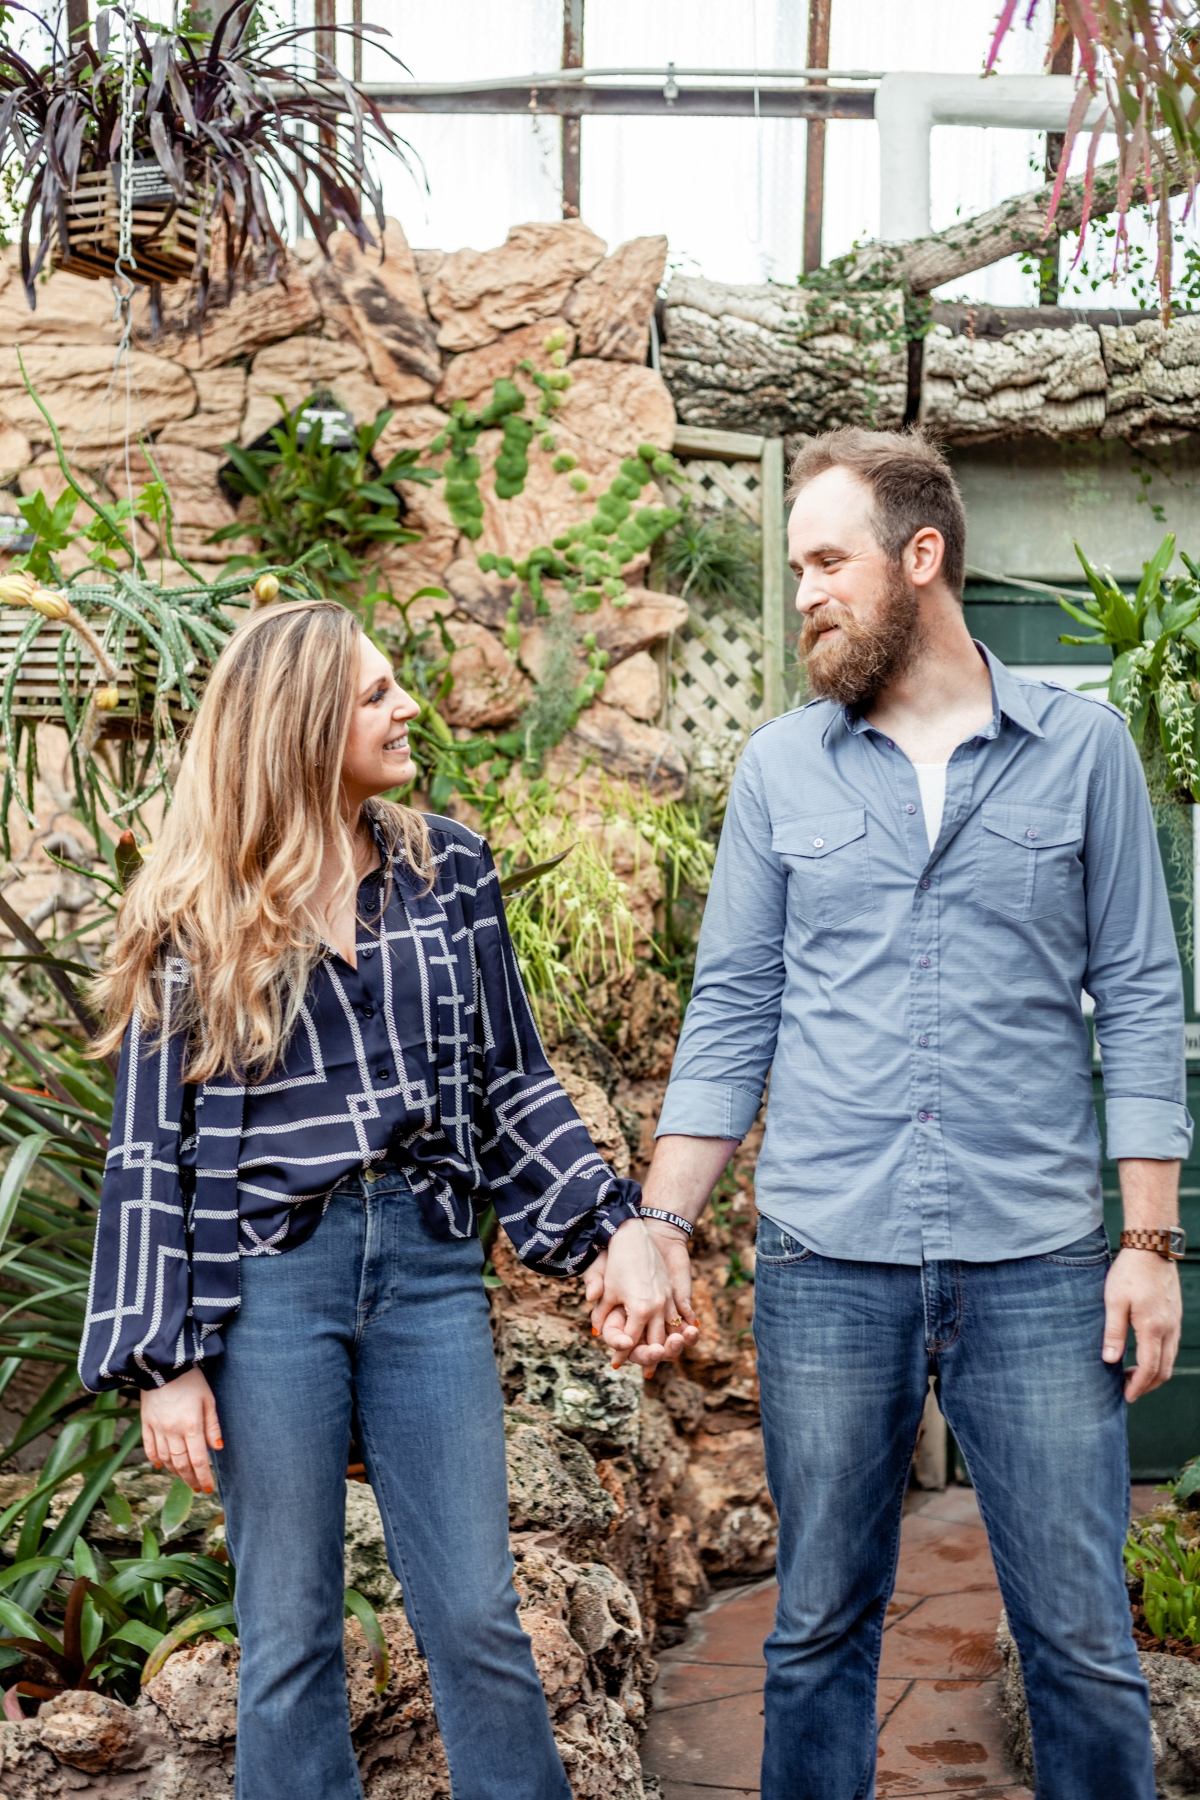 Lincoln Park Conservatory Engagement Session 19